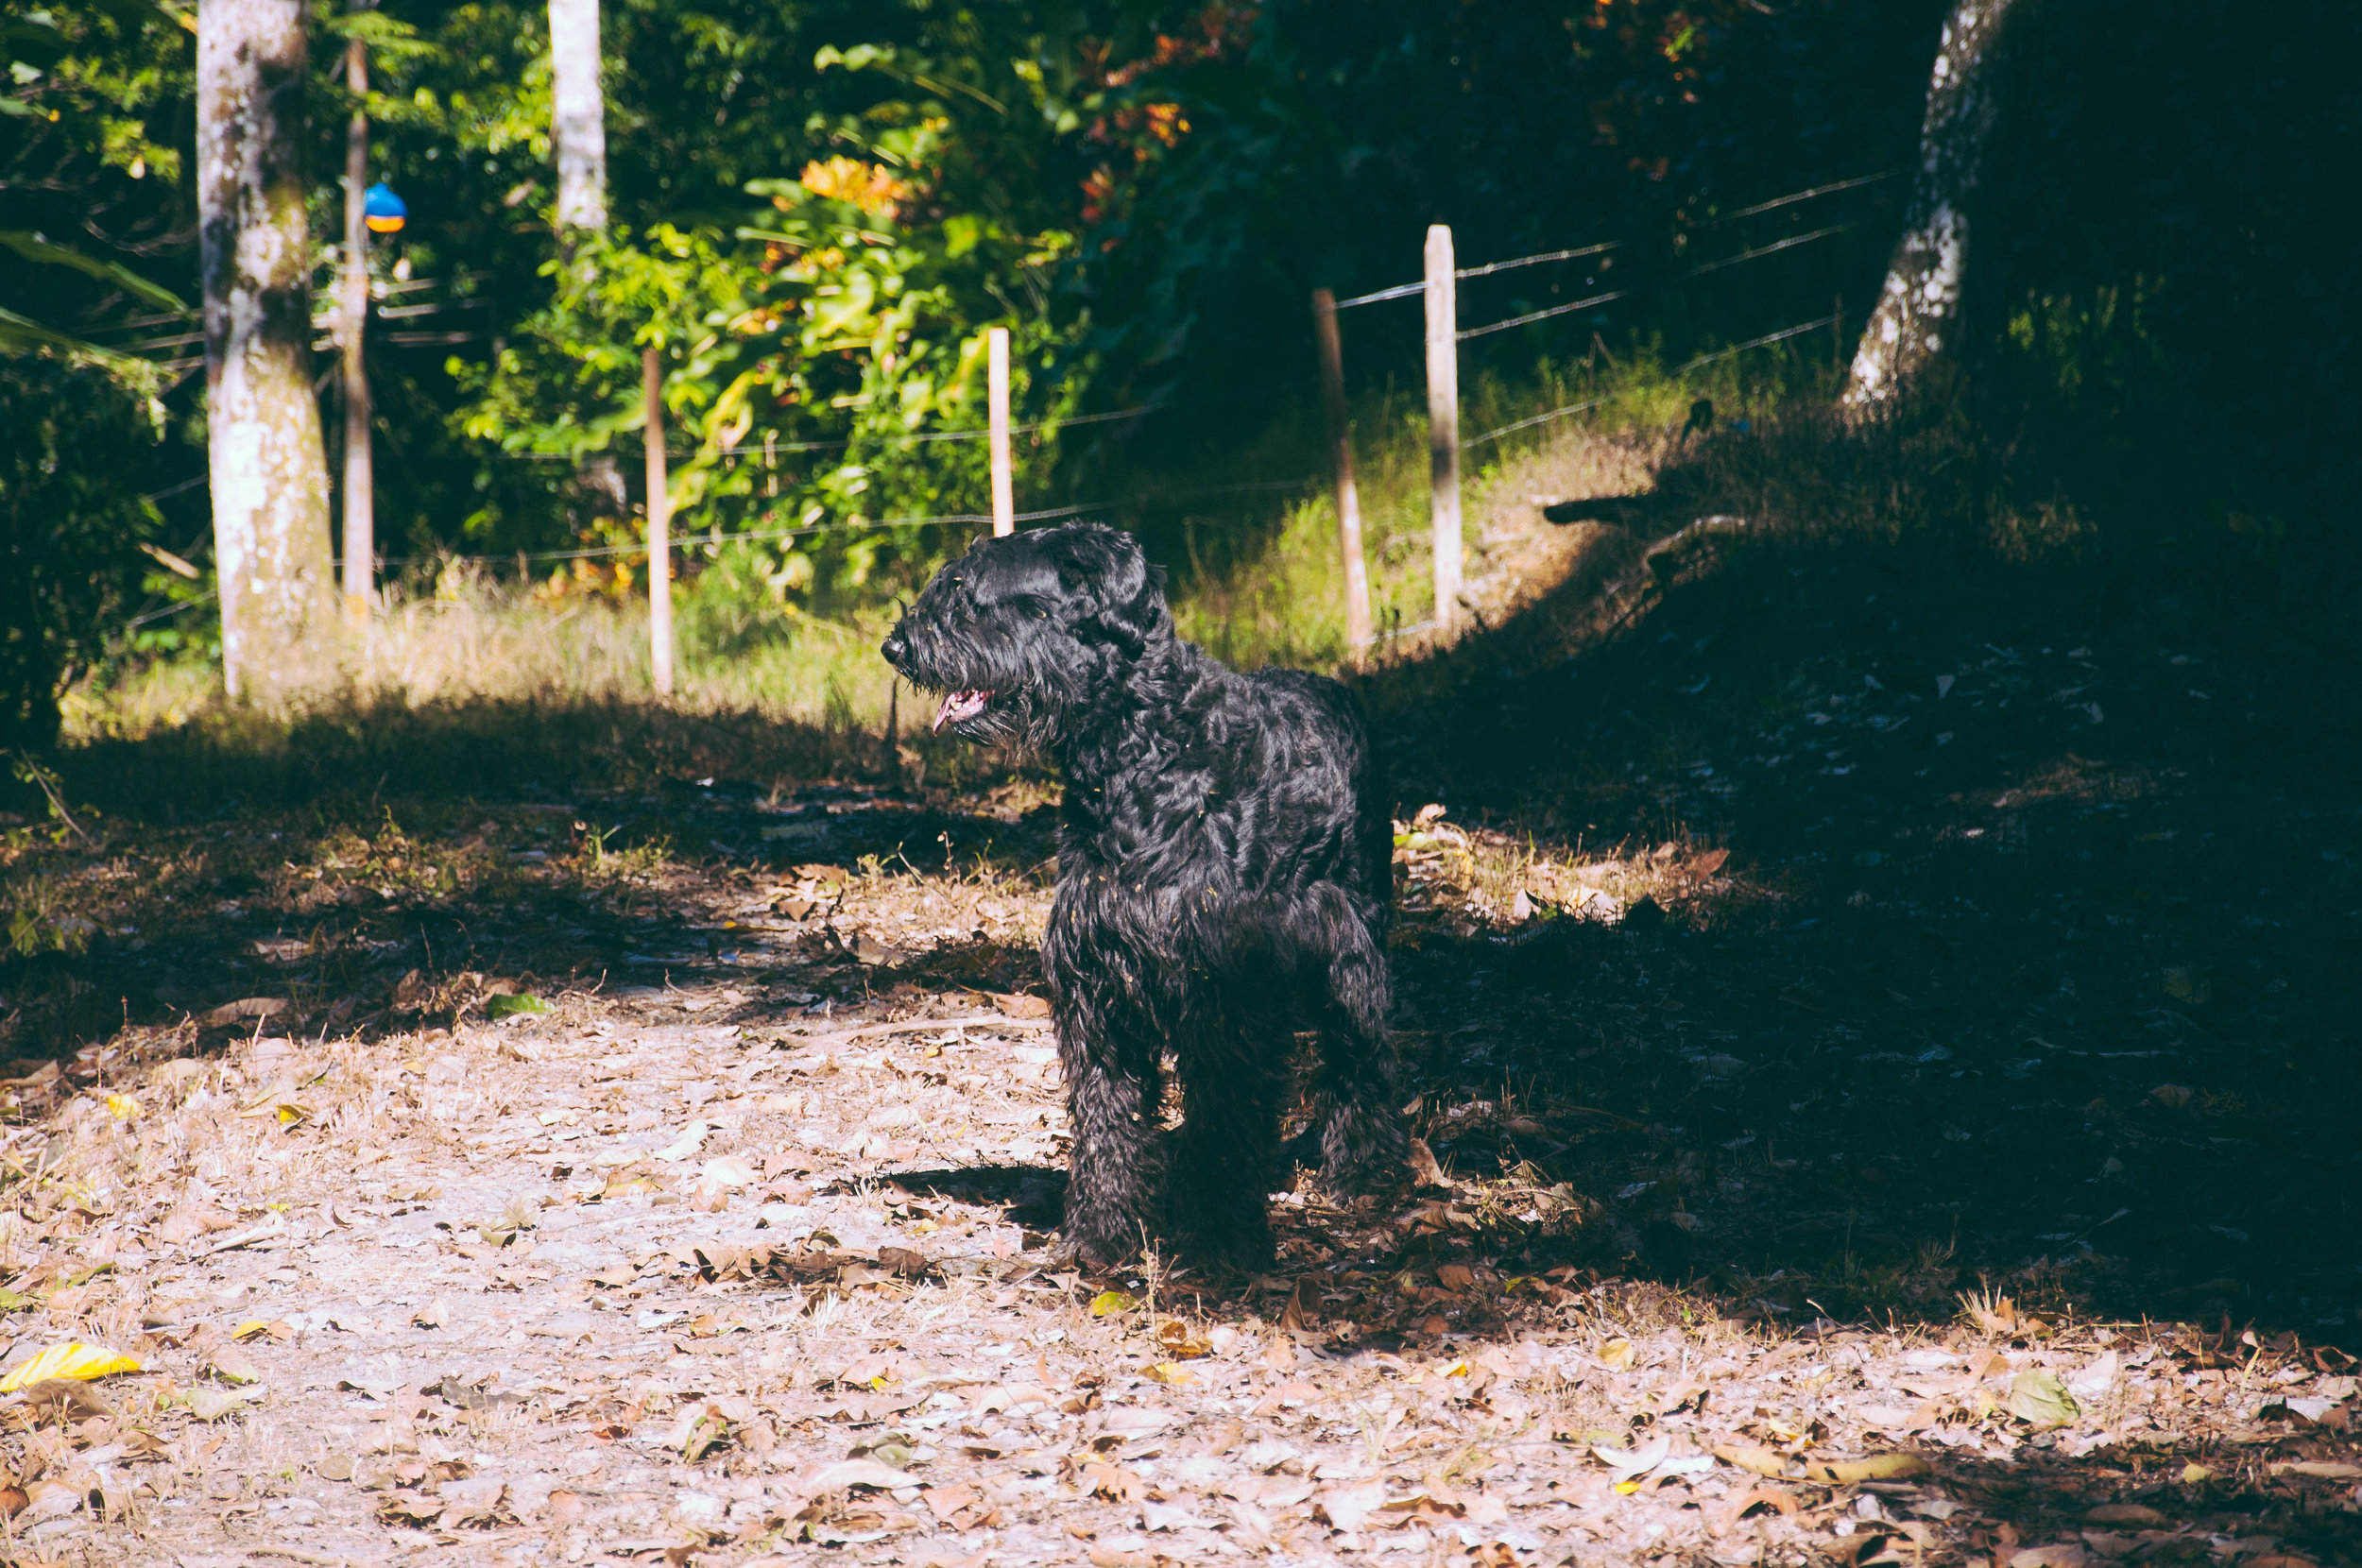 Big brother Felix (Giant Schnauzer) walked the whole perimeter of the 2 1/2 hectares, proclaiming his territory!